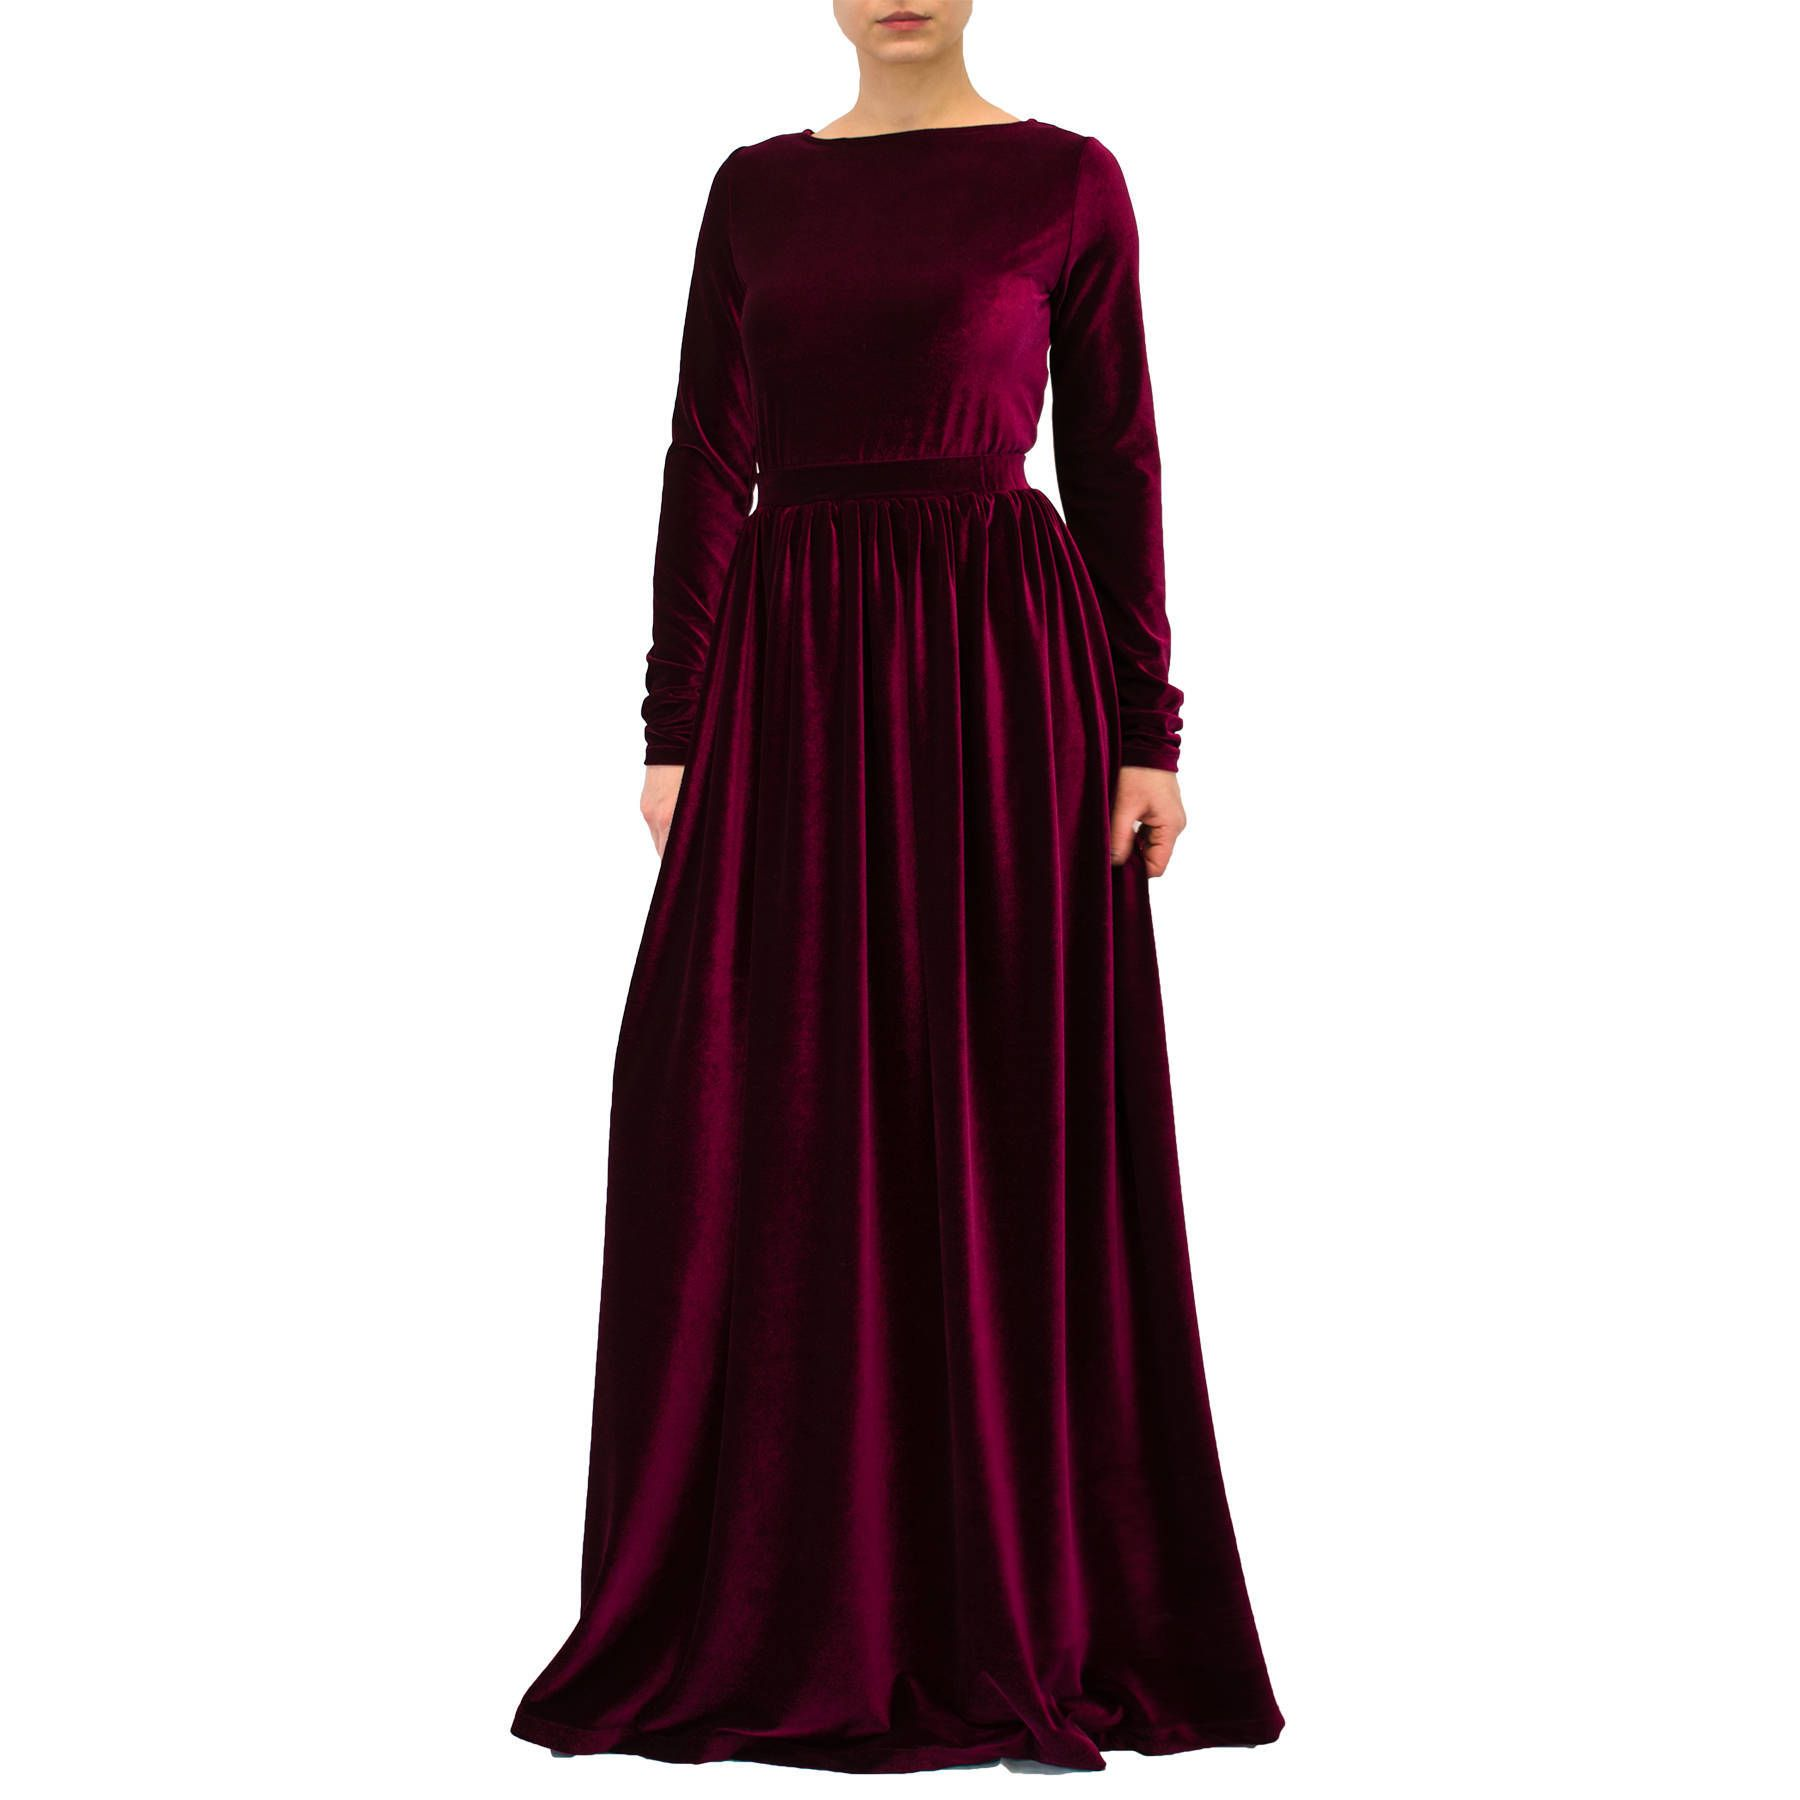 3a872330286 Our new VELVET FAIRY maxi dress in mesmerizing Burgundy color is perfect  for your Christmas!